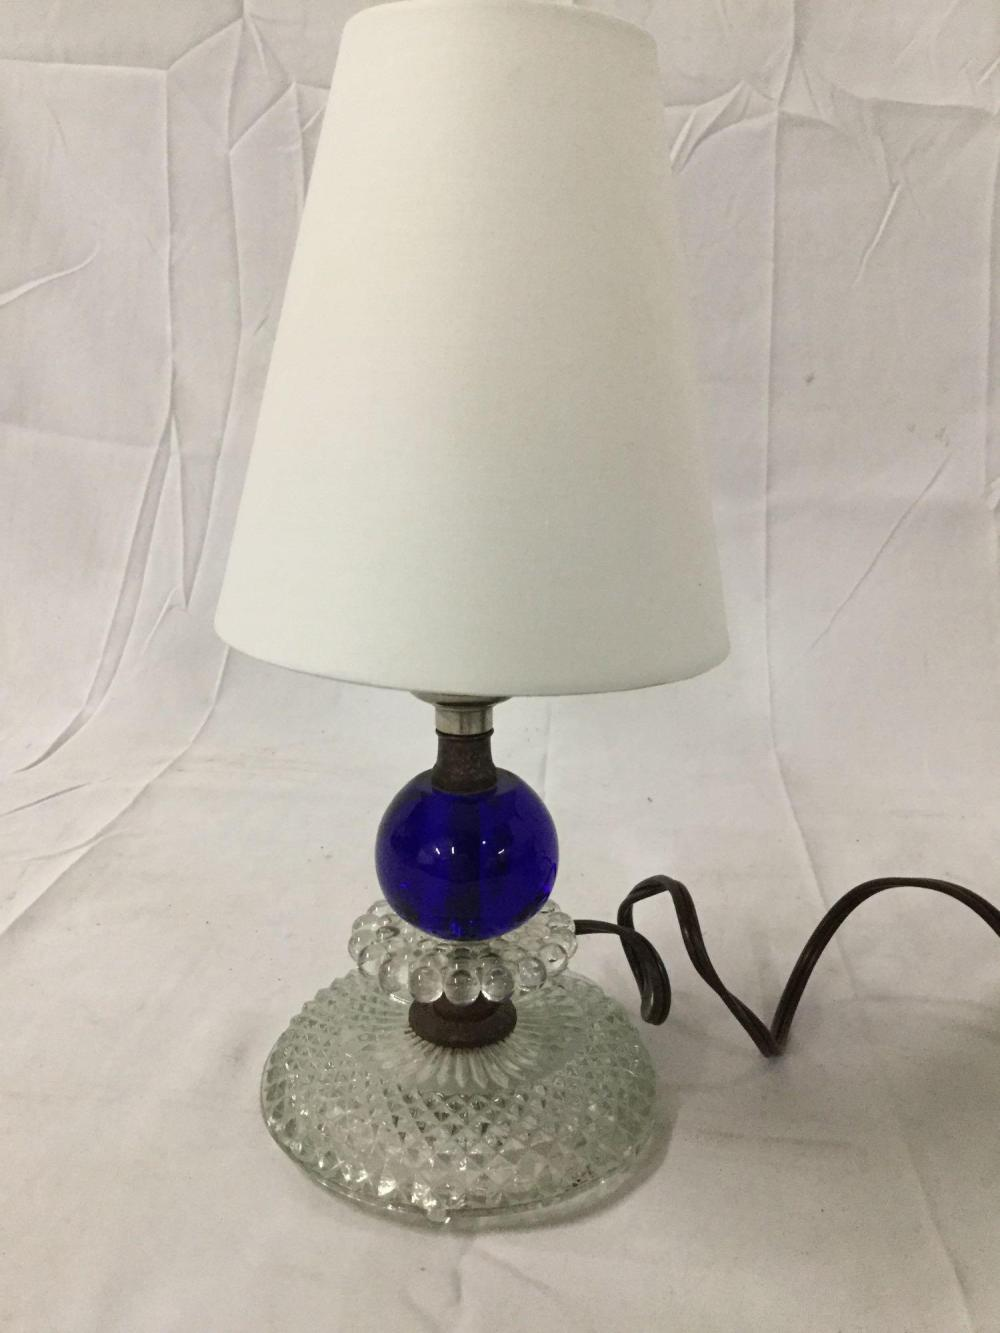 Pair Of Mid Century Blue Ball Design Glass Table Lamps Tested And